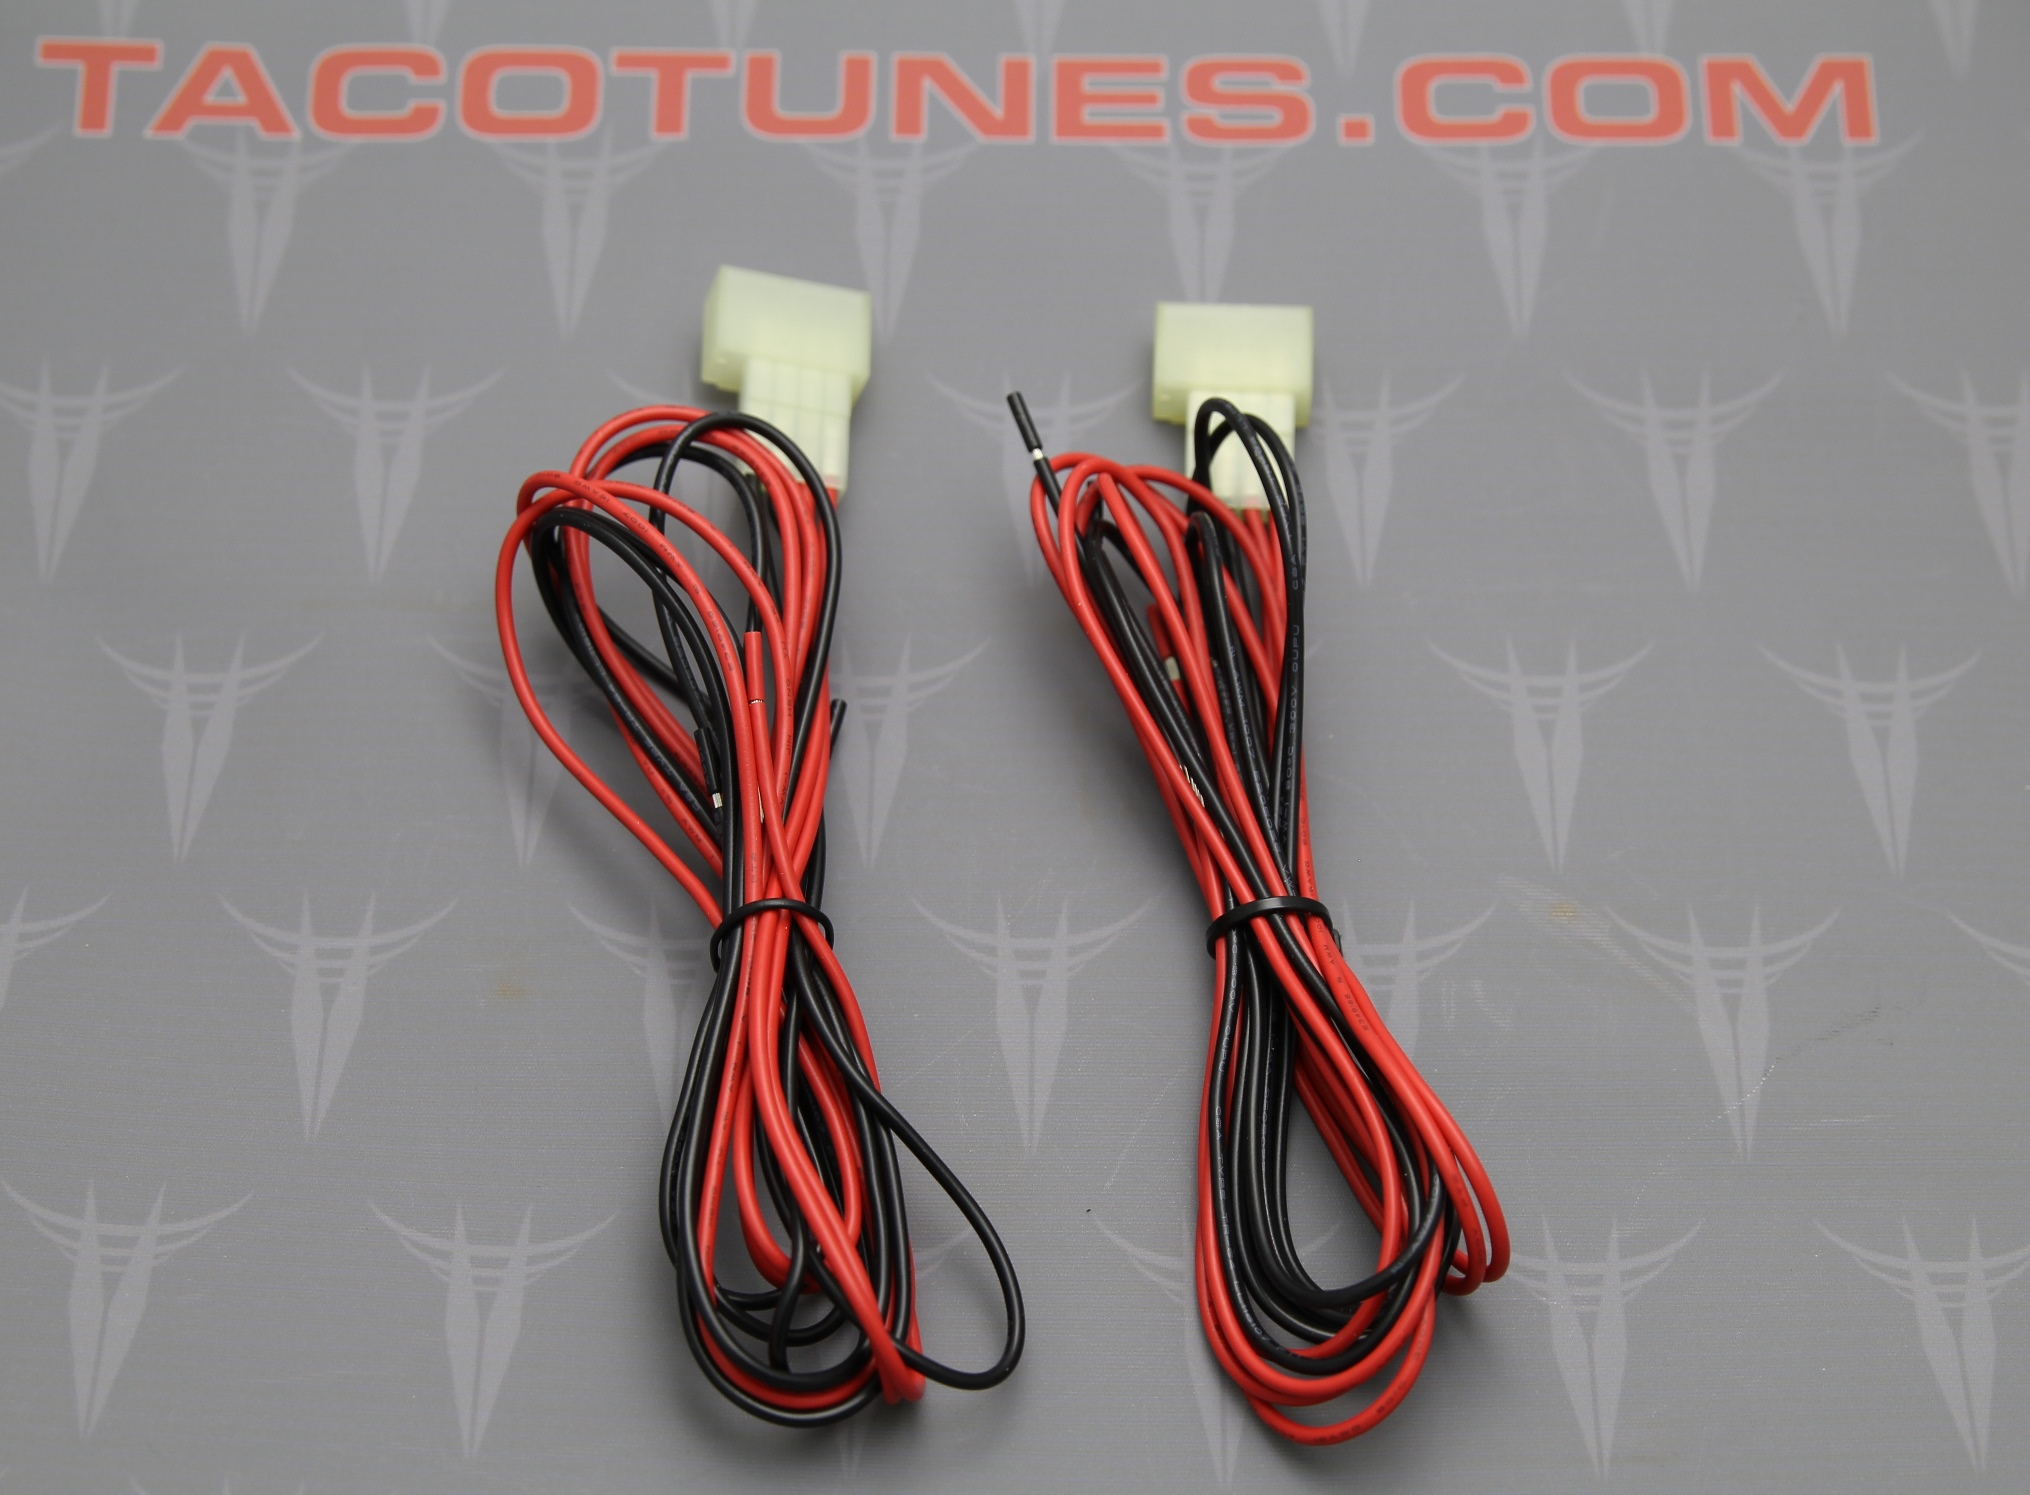 Toyota 4Runner Tweeter Wire Harness Adapter connectors 4 2010 2017 toyota 4runner tweeter speaker wiring harness adapter toyota wire harness connectors at gsmx.co